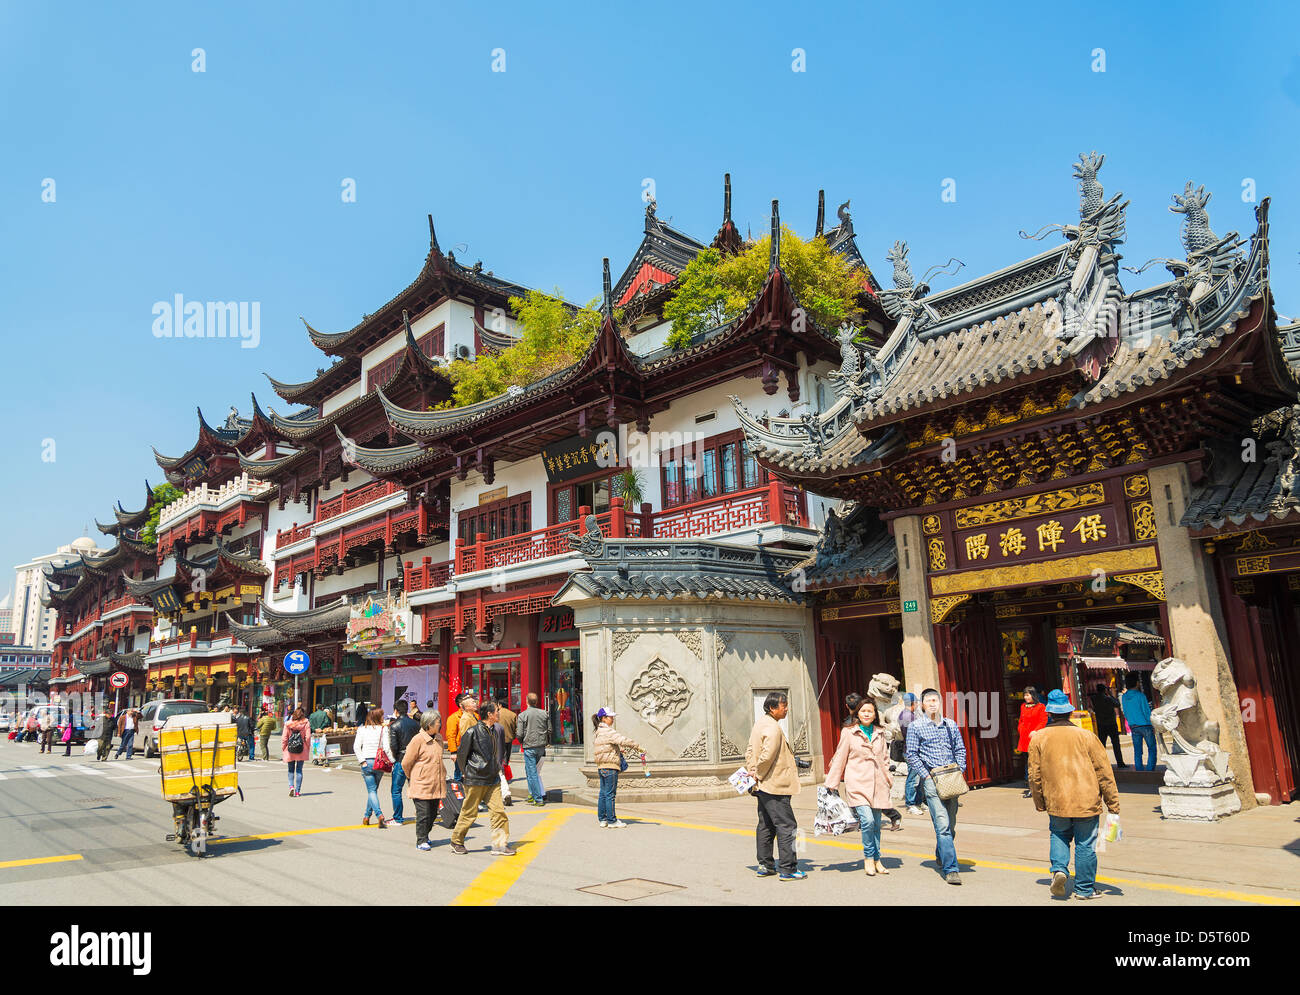 Vieille ville de Shanghai en Chine Photo Stock